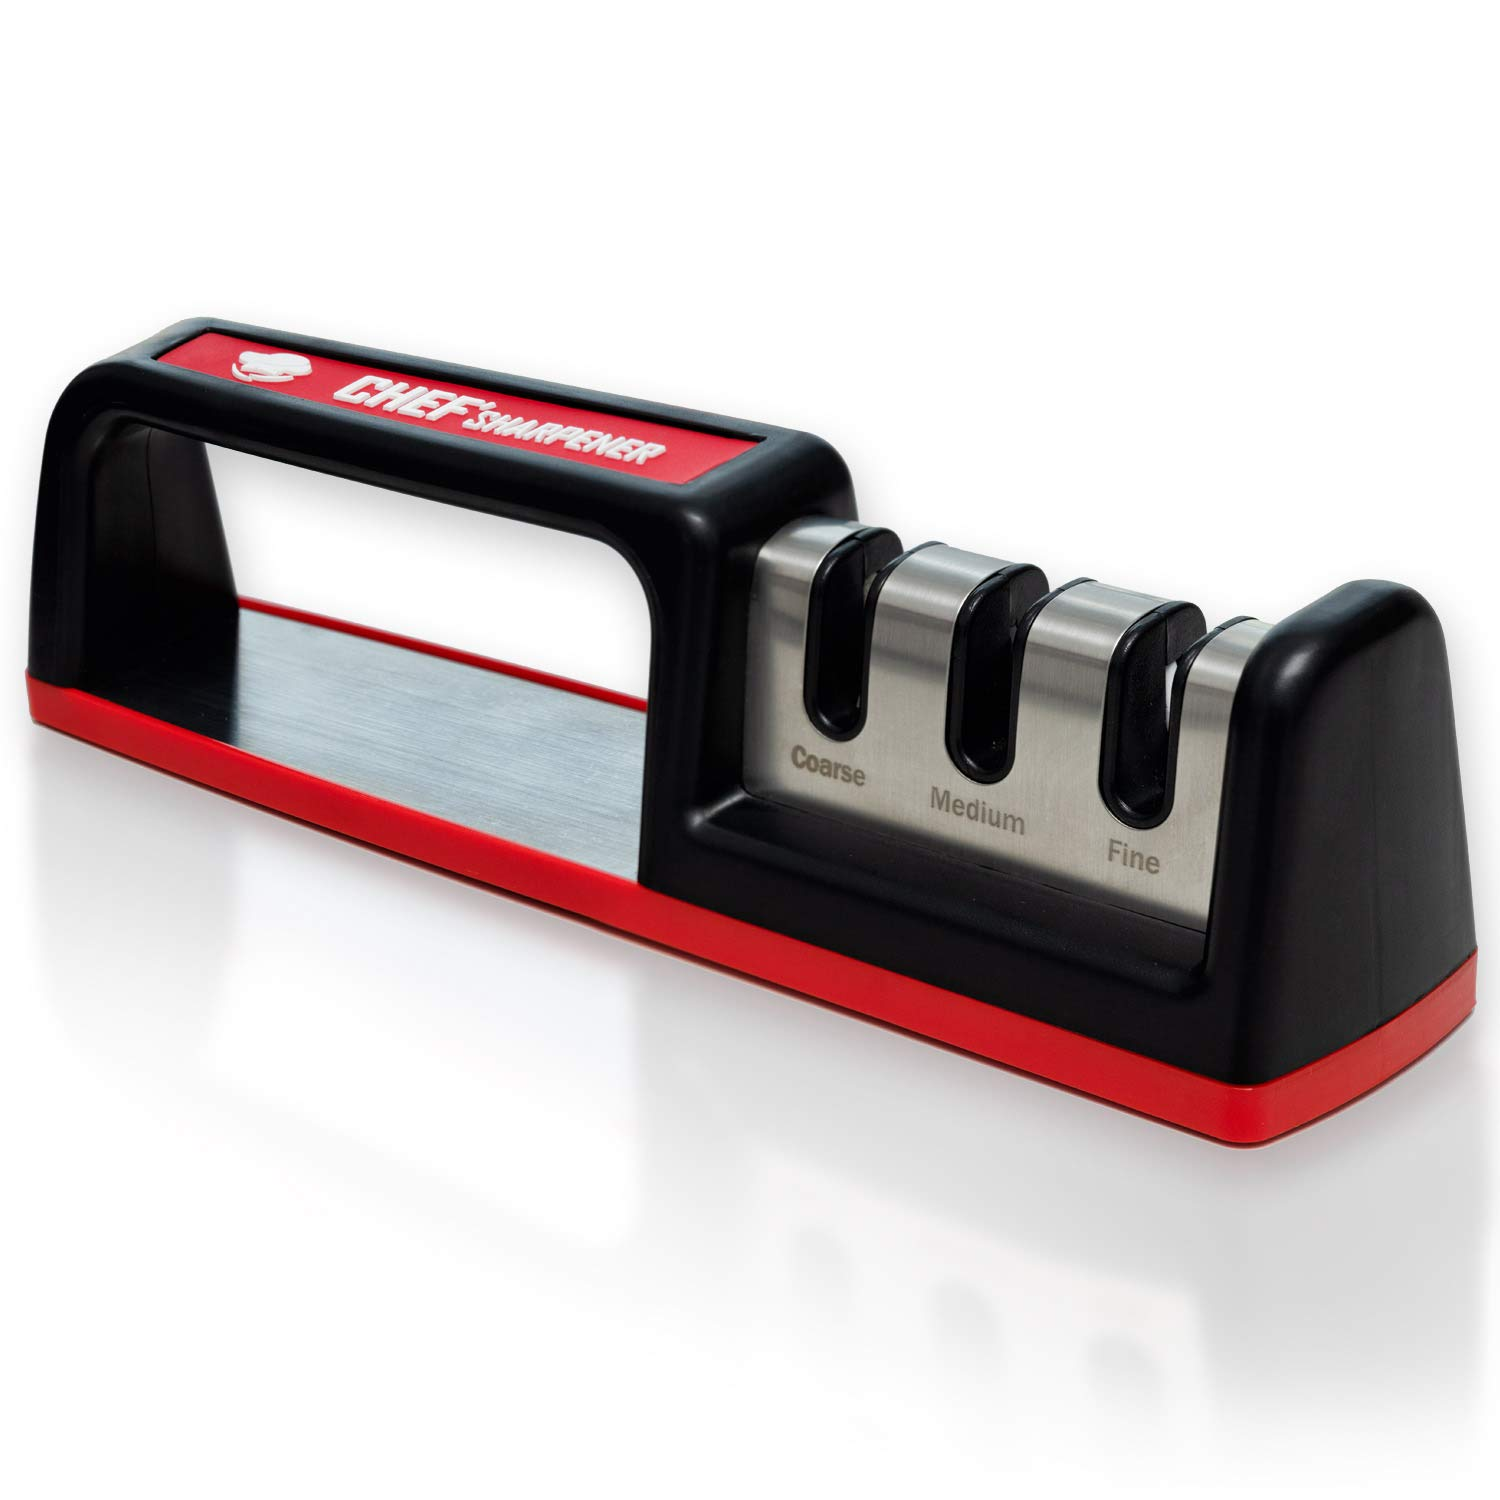 Chef' Sharpener - Kitchen Knife Sharpener CS-T01 Complete 3-Stage Diamond Tungsten Ceramic Knife Sharpening Tool, Easy And Safe To Use, Fast And Effective Sharpening by Chef' Sharpener